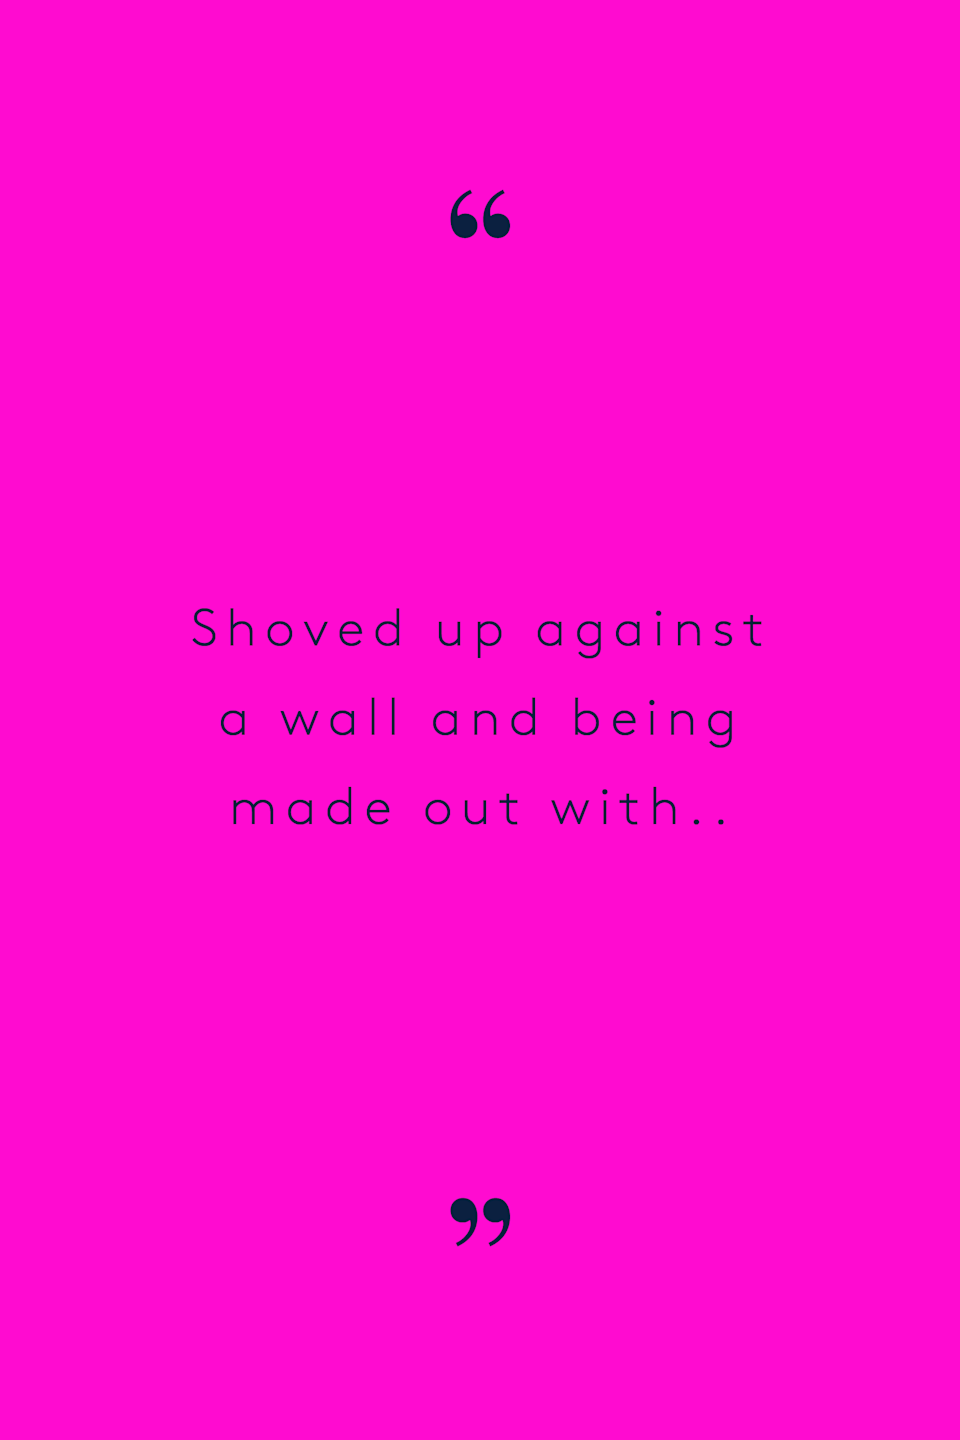 """<p>""""Being pushed up against a wall. Not necessarily to have sex, just shoved up against a wall and made out with. Out of passion, not anger. A little bit of kink. Maybe some handcuffs, a little bit of rope, some extra language."""" – <a href=""""https://www.reddit.com/r/AskReddit/comments/1fbj22/women_of_reddit_what_are_some_common_fantasies/ca8rdud/"""" rel=""""nofollow noopener"""" target=""""_blank"""" data-ylk=""""slk:Flaminglegosinthesky"""" class=""""link rapid-noclick-resp"""">Flaminglegosinthesky</a> on Reddit</p>"""